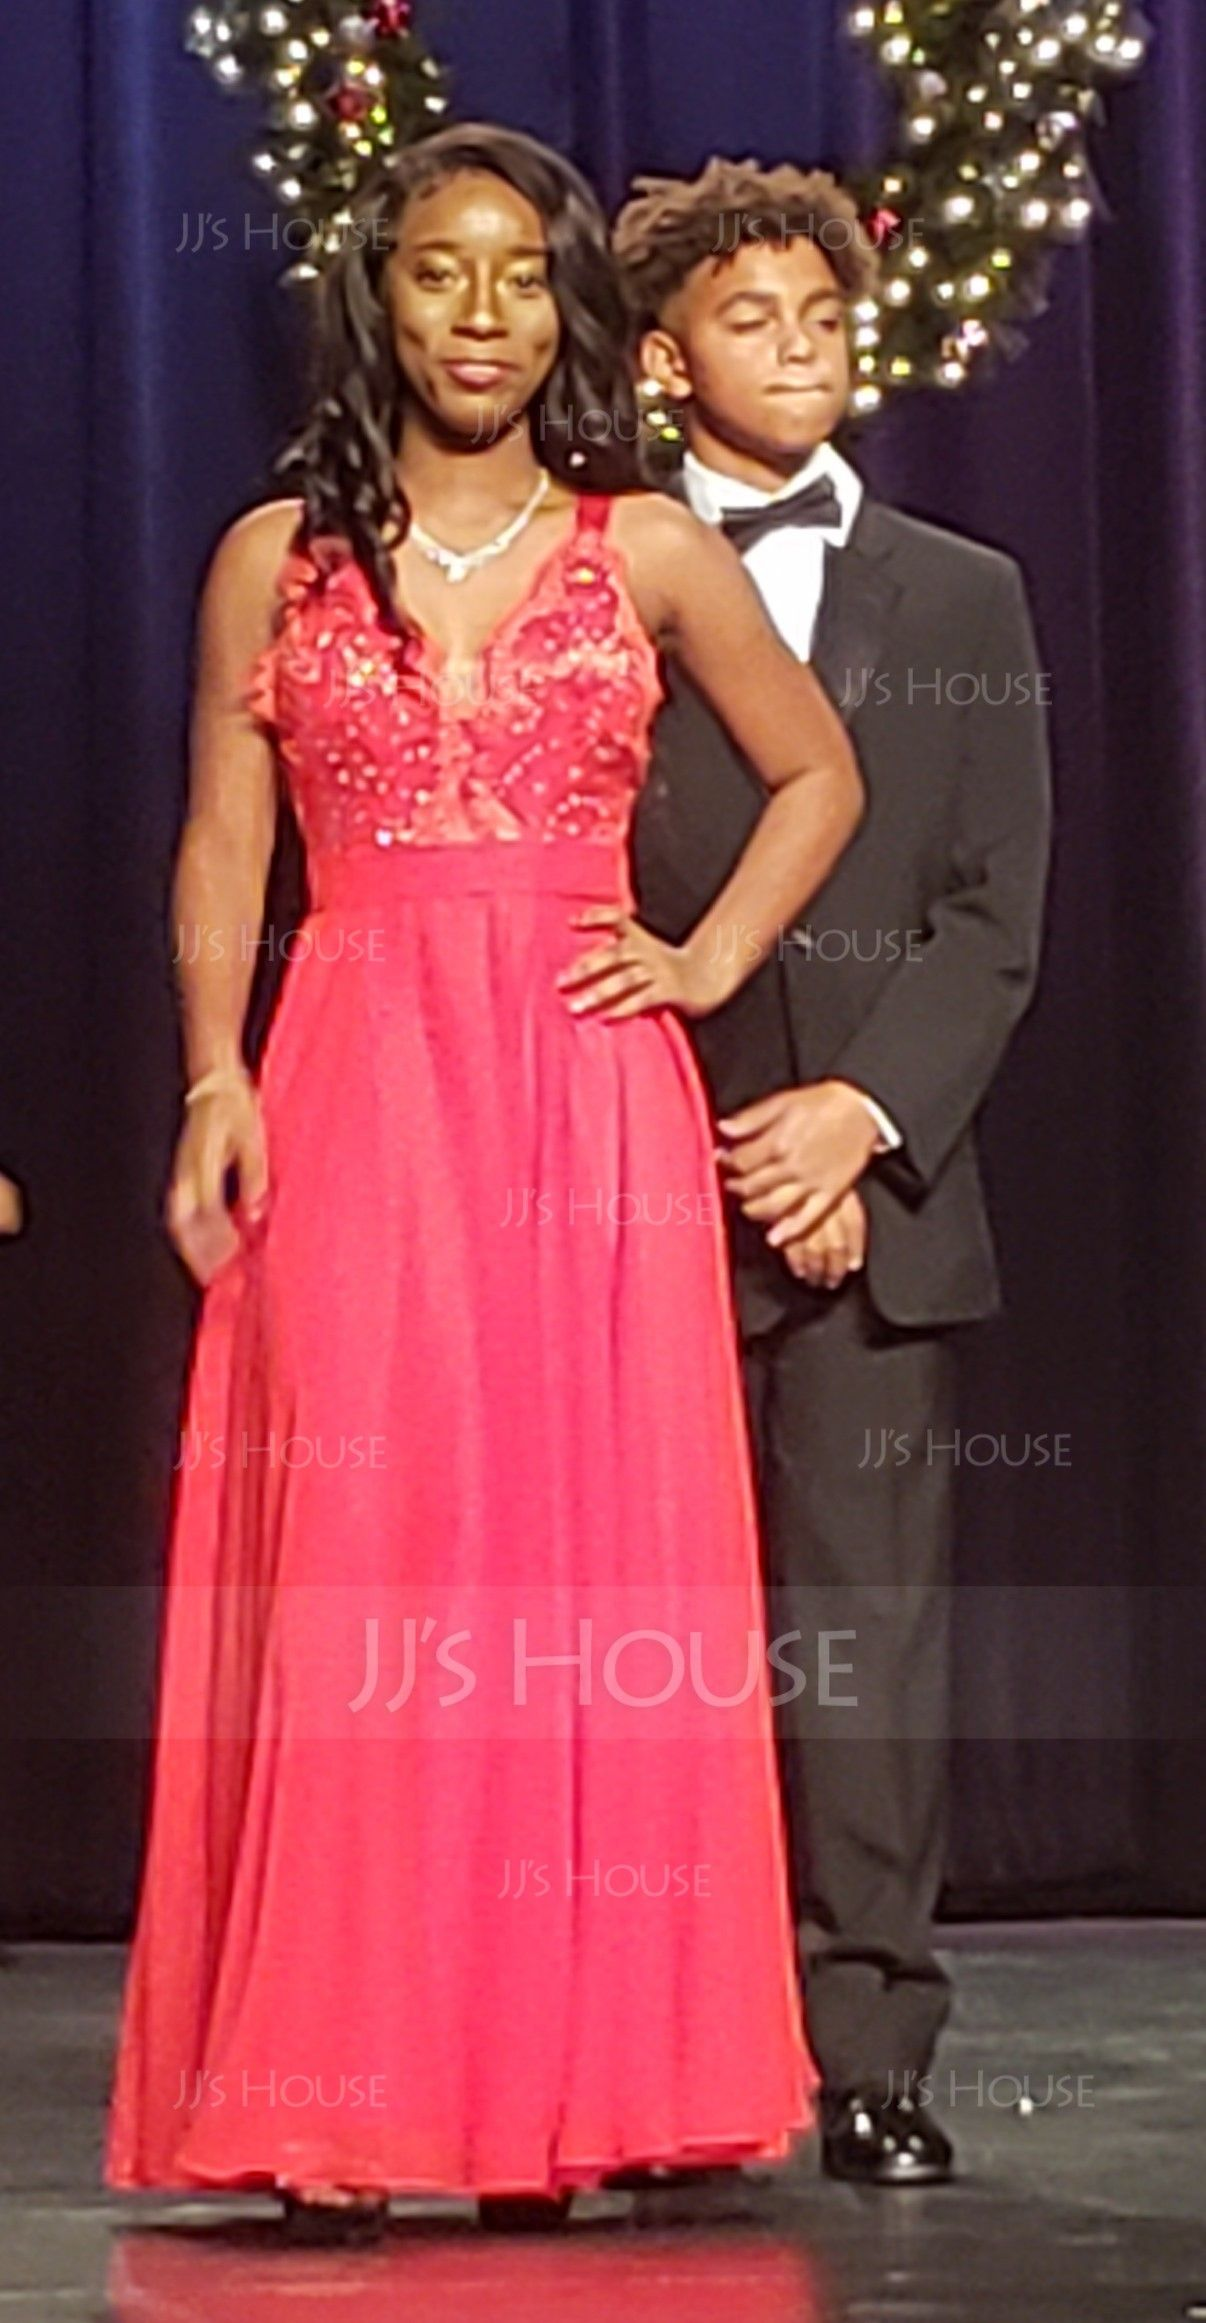 A-Line Halter Floor-Length Chiffon Prom Dresses With Split Front (018146348)